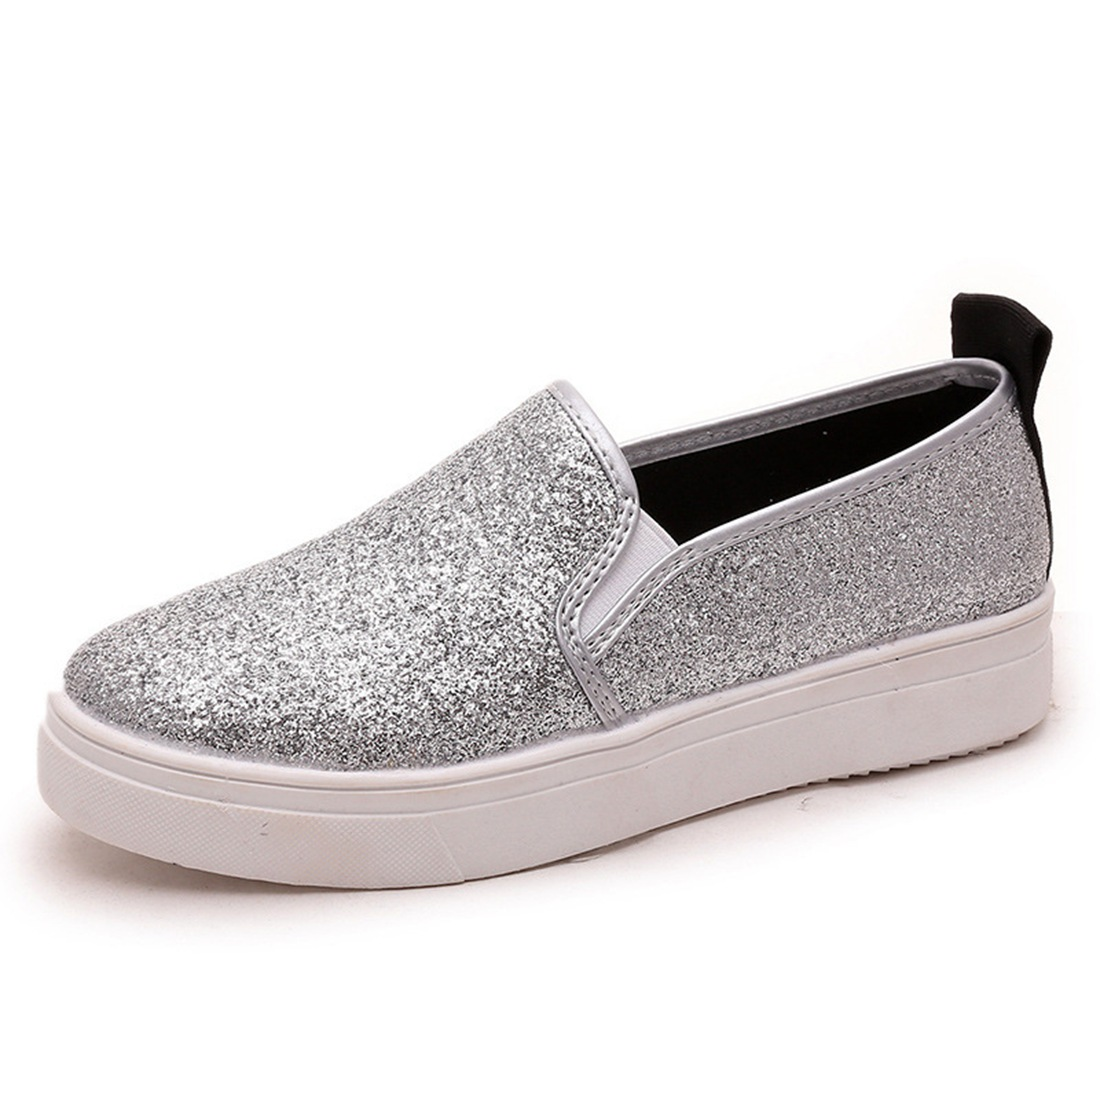 2017 shoes Women platform Loafers Silver Sequined Cloth Slip on Flat Shoes Spring Autumn Woman Creepers Glitter zapatos mujer цены онлайн